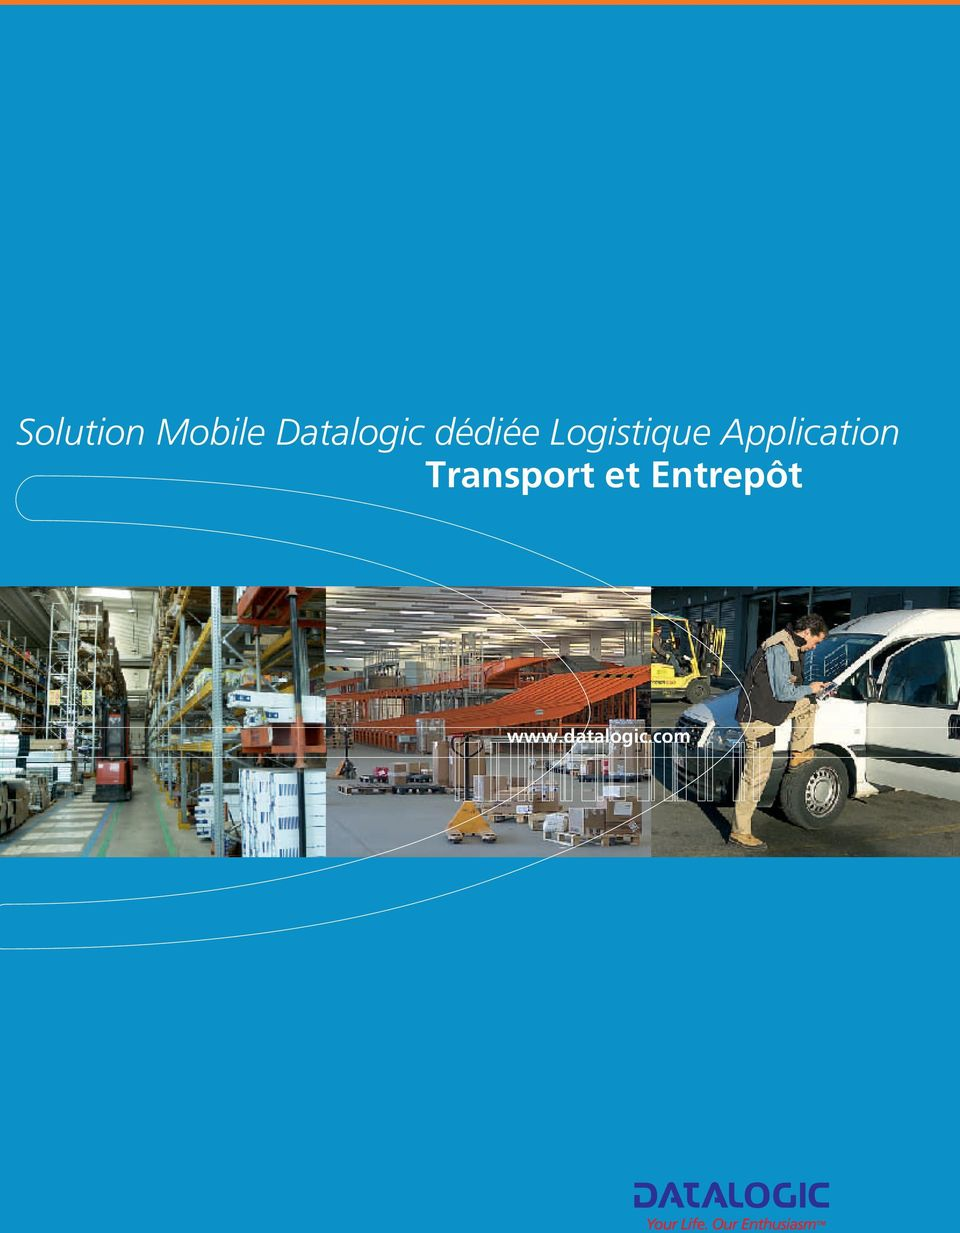 Logistique Application